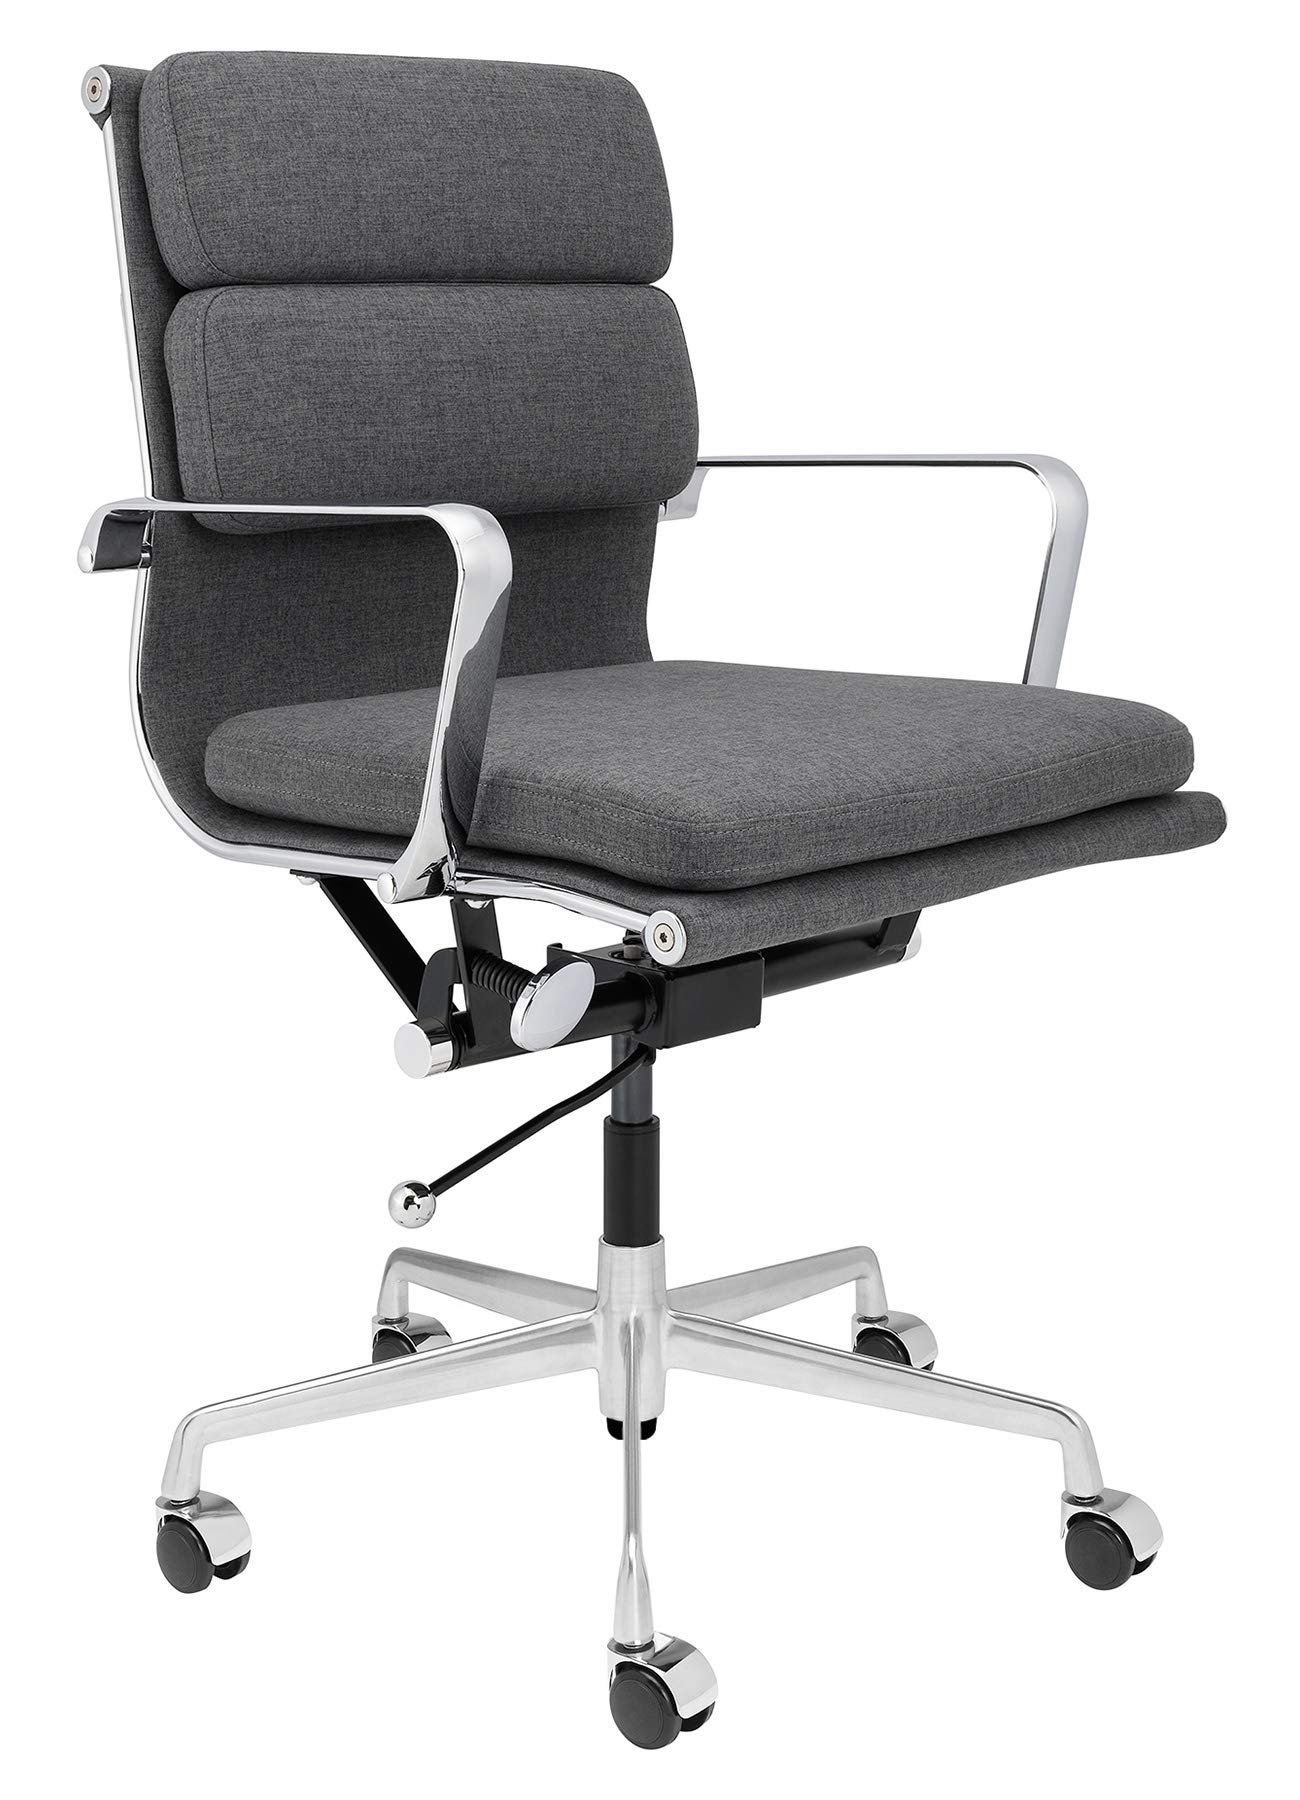 SOHO Mid Century Modern Soft Pad Management Chair (Charcoal Fabric)